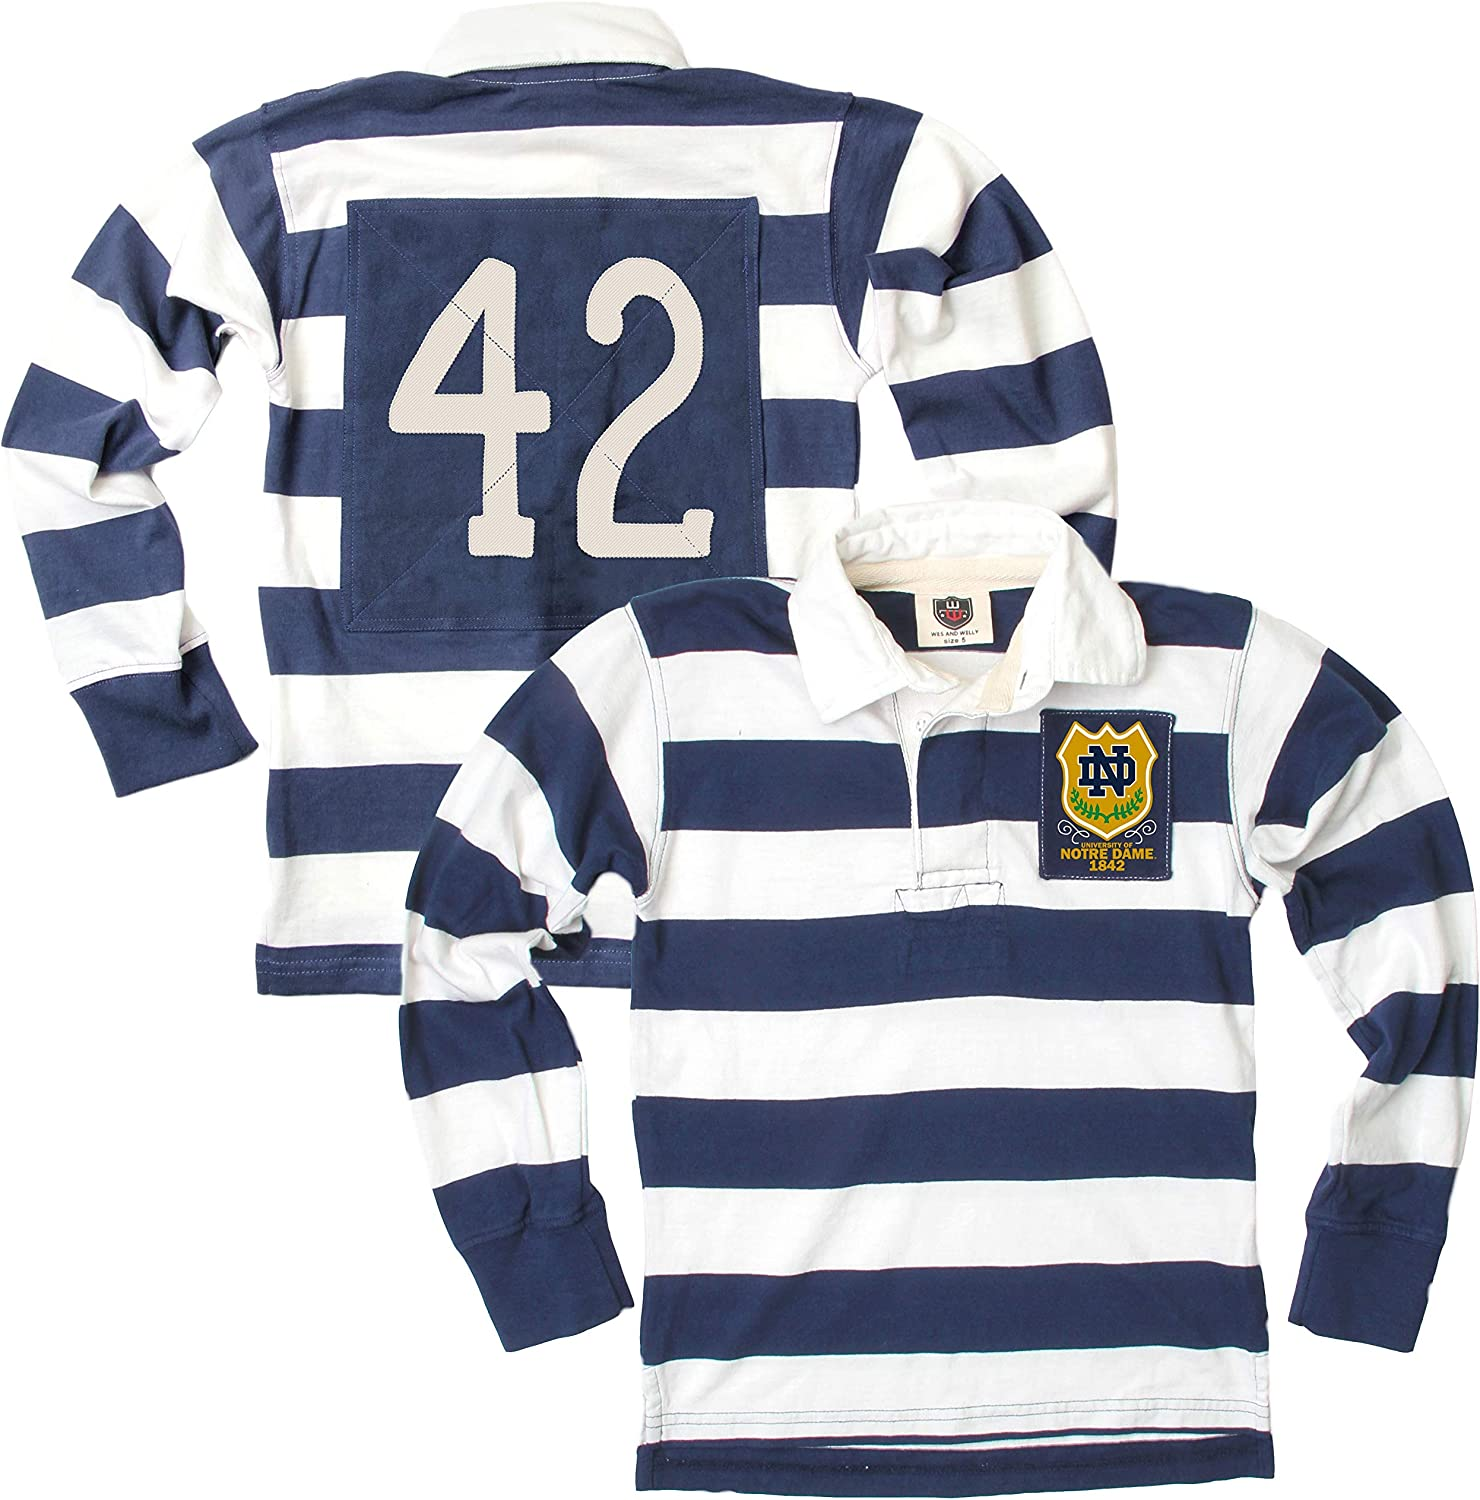 Wes & Willy Notre Dame Fighting Irish Youth Rugby Polo